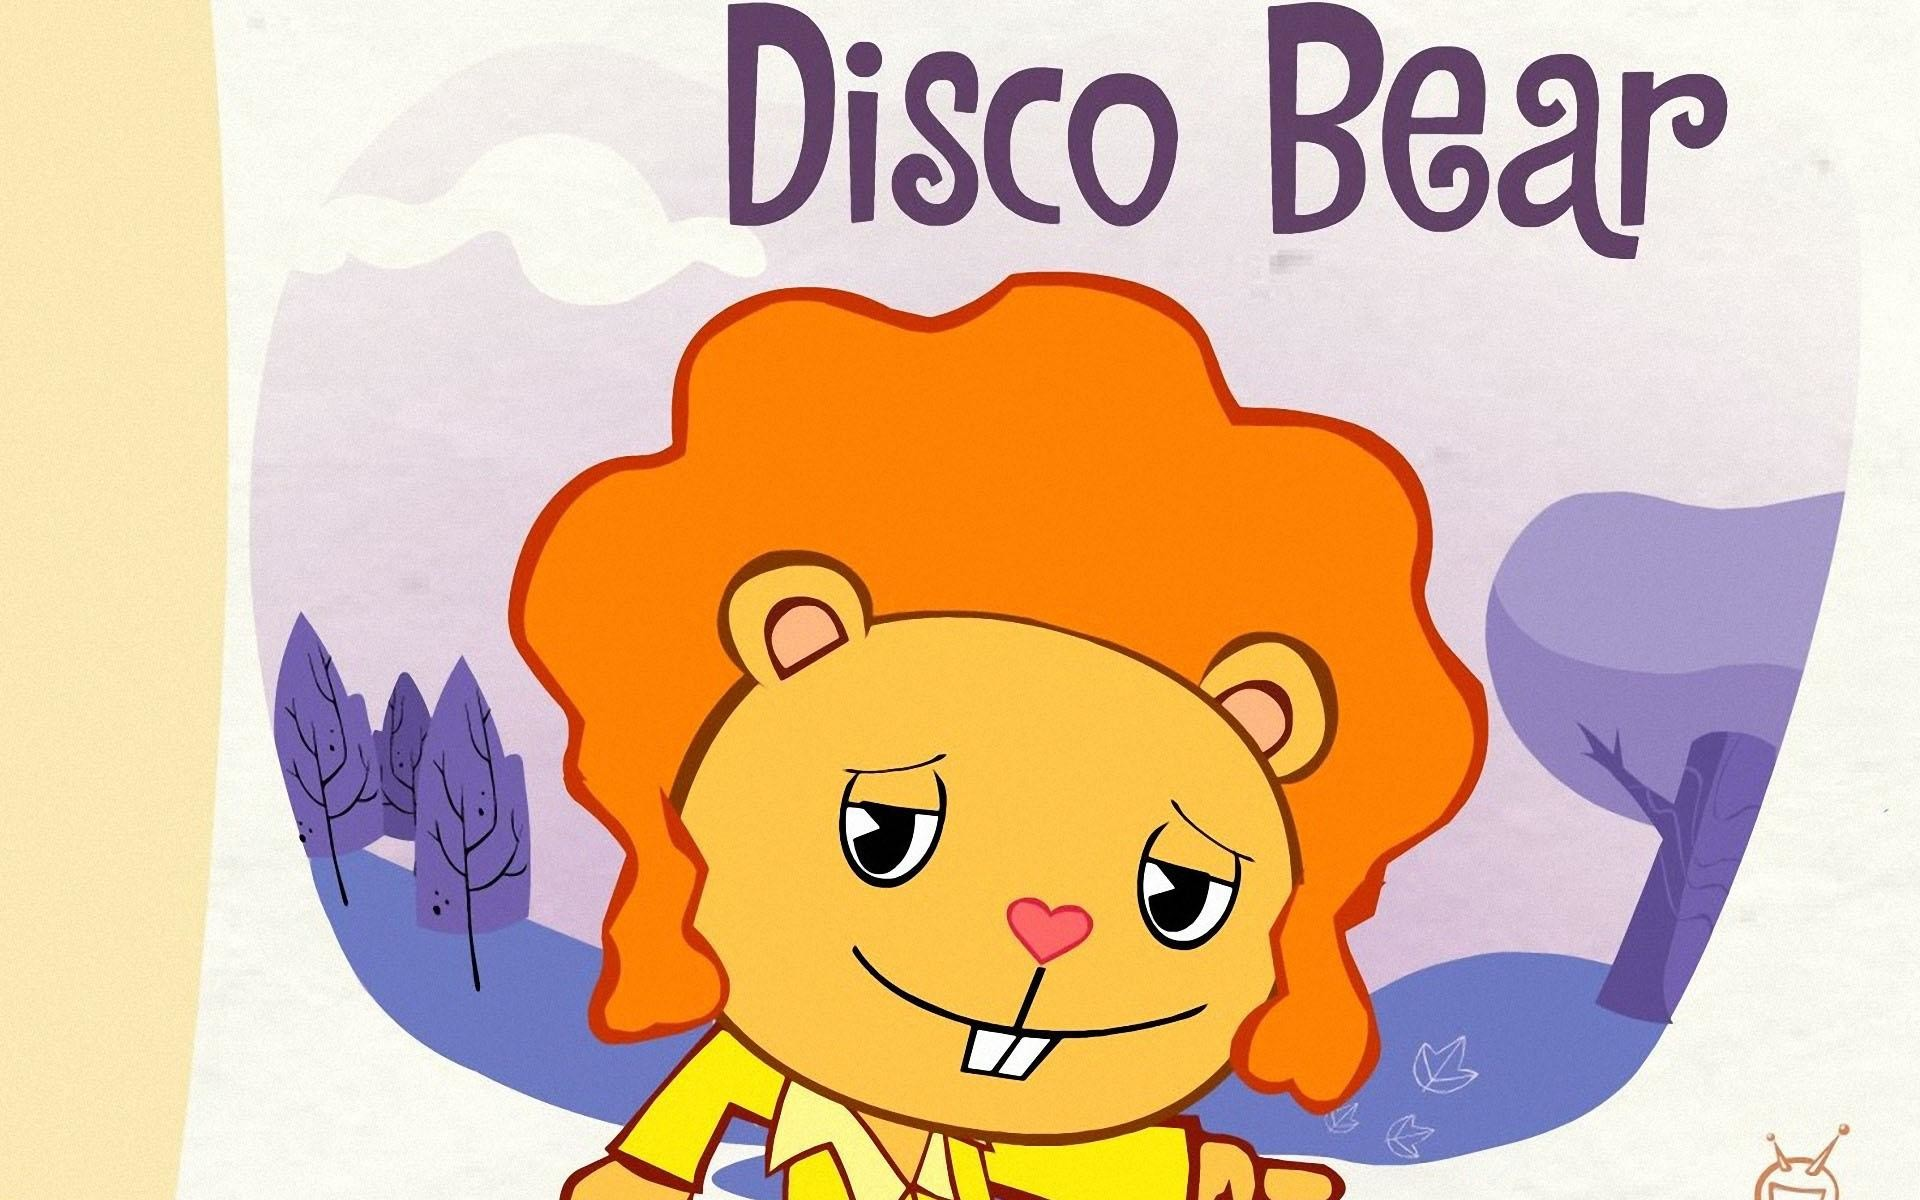 1920x1200 HD Wallpapers Disco Bear - Happy Tree Friends 2011